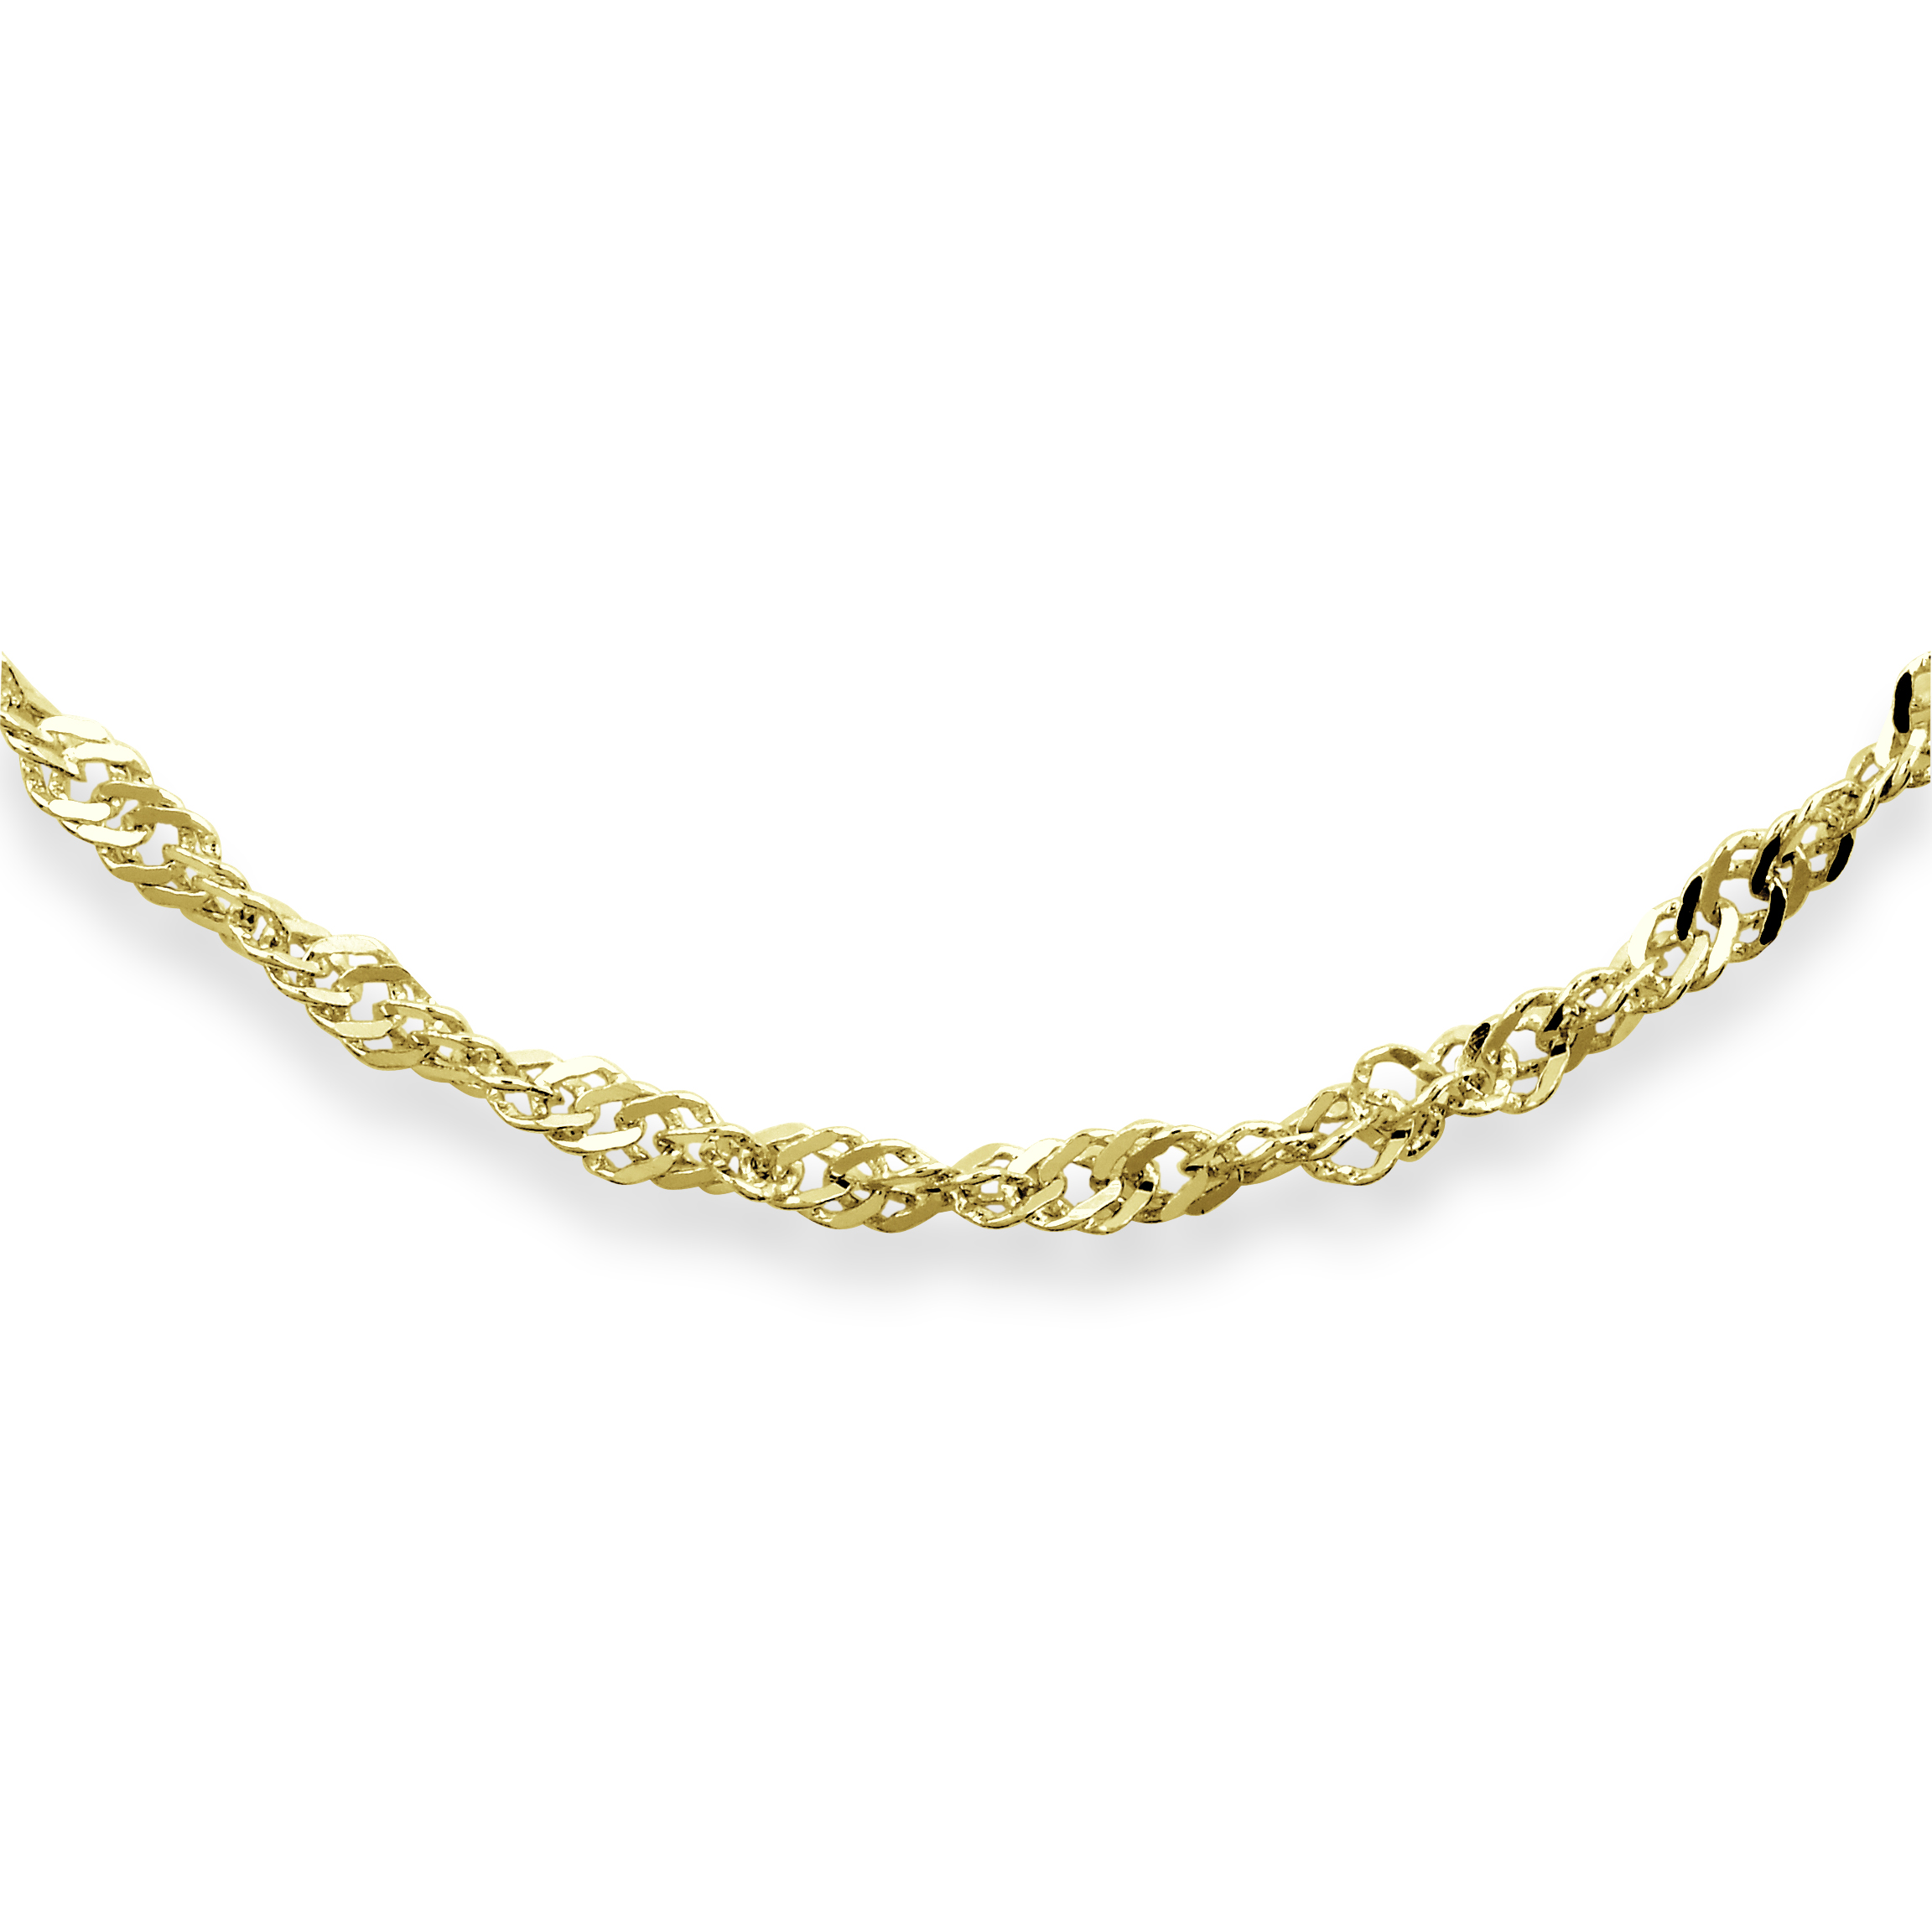 10'' Singapore Ankle Chain for women - 10K yellow Gold